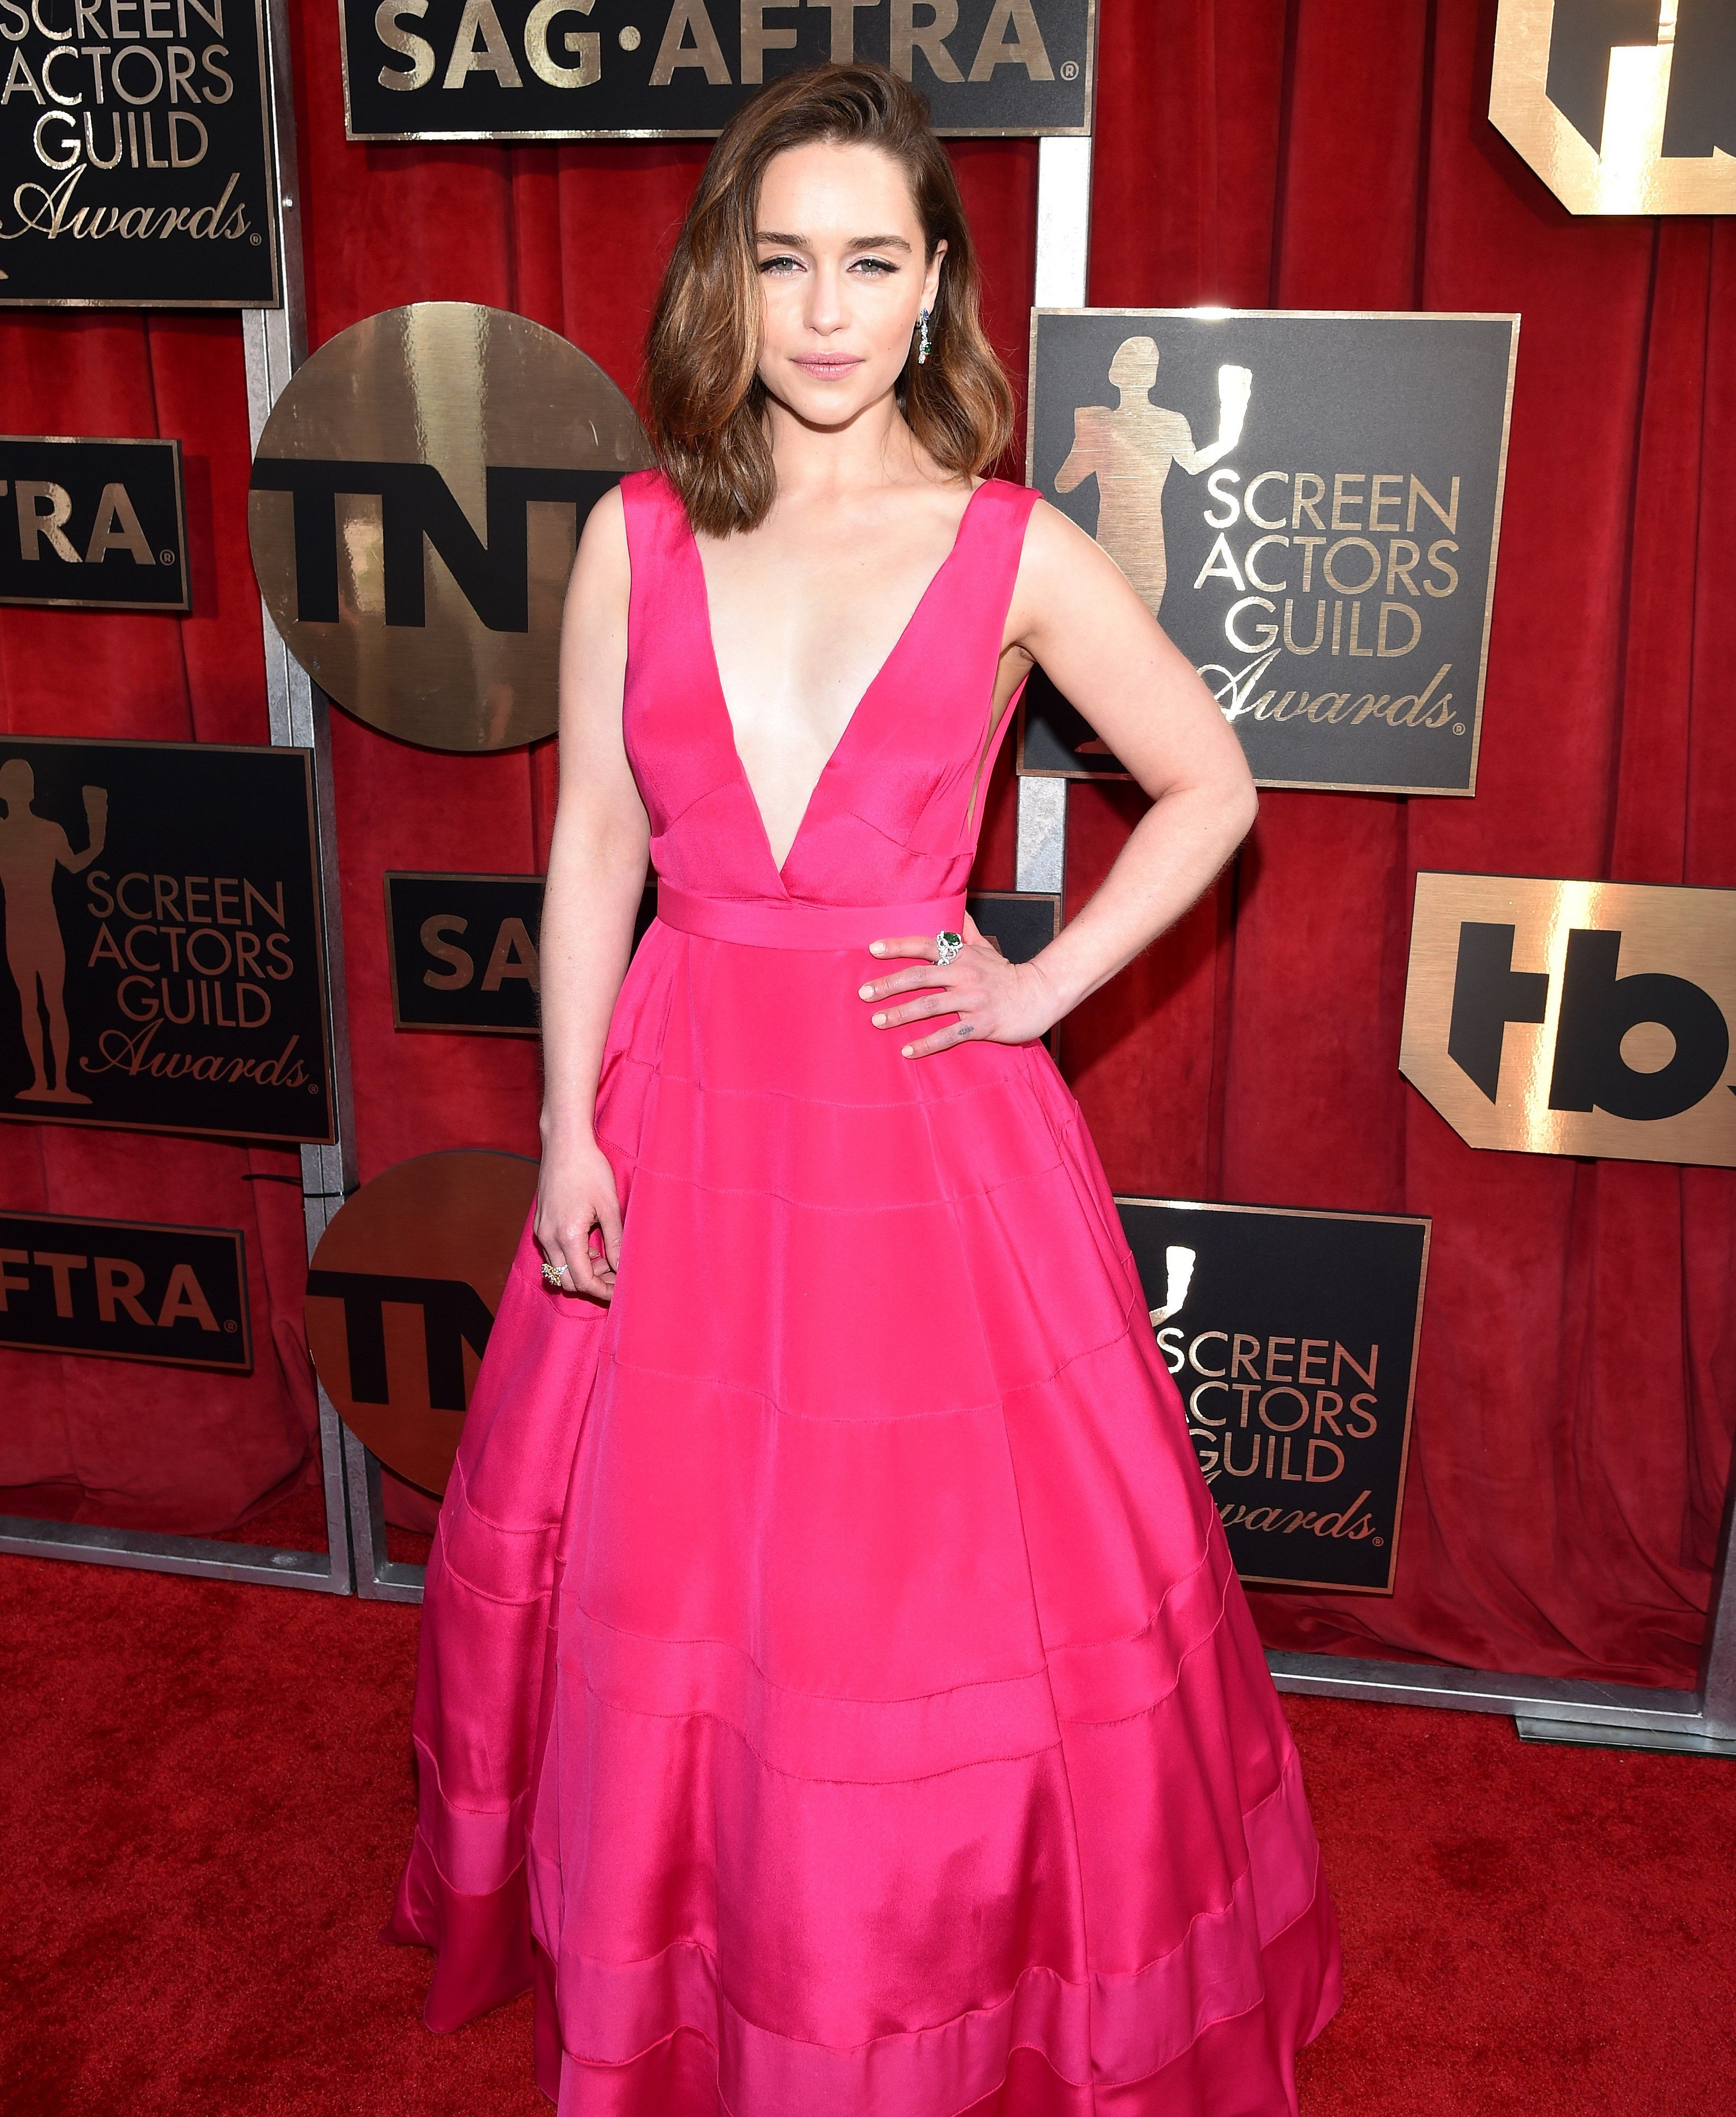 SAG Awards 2016: Fashion—Live From the Red Carpet | Redecilla